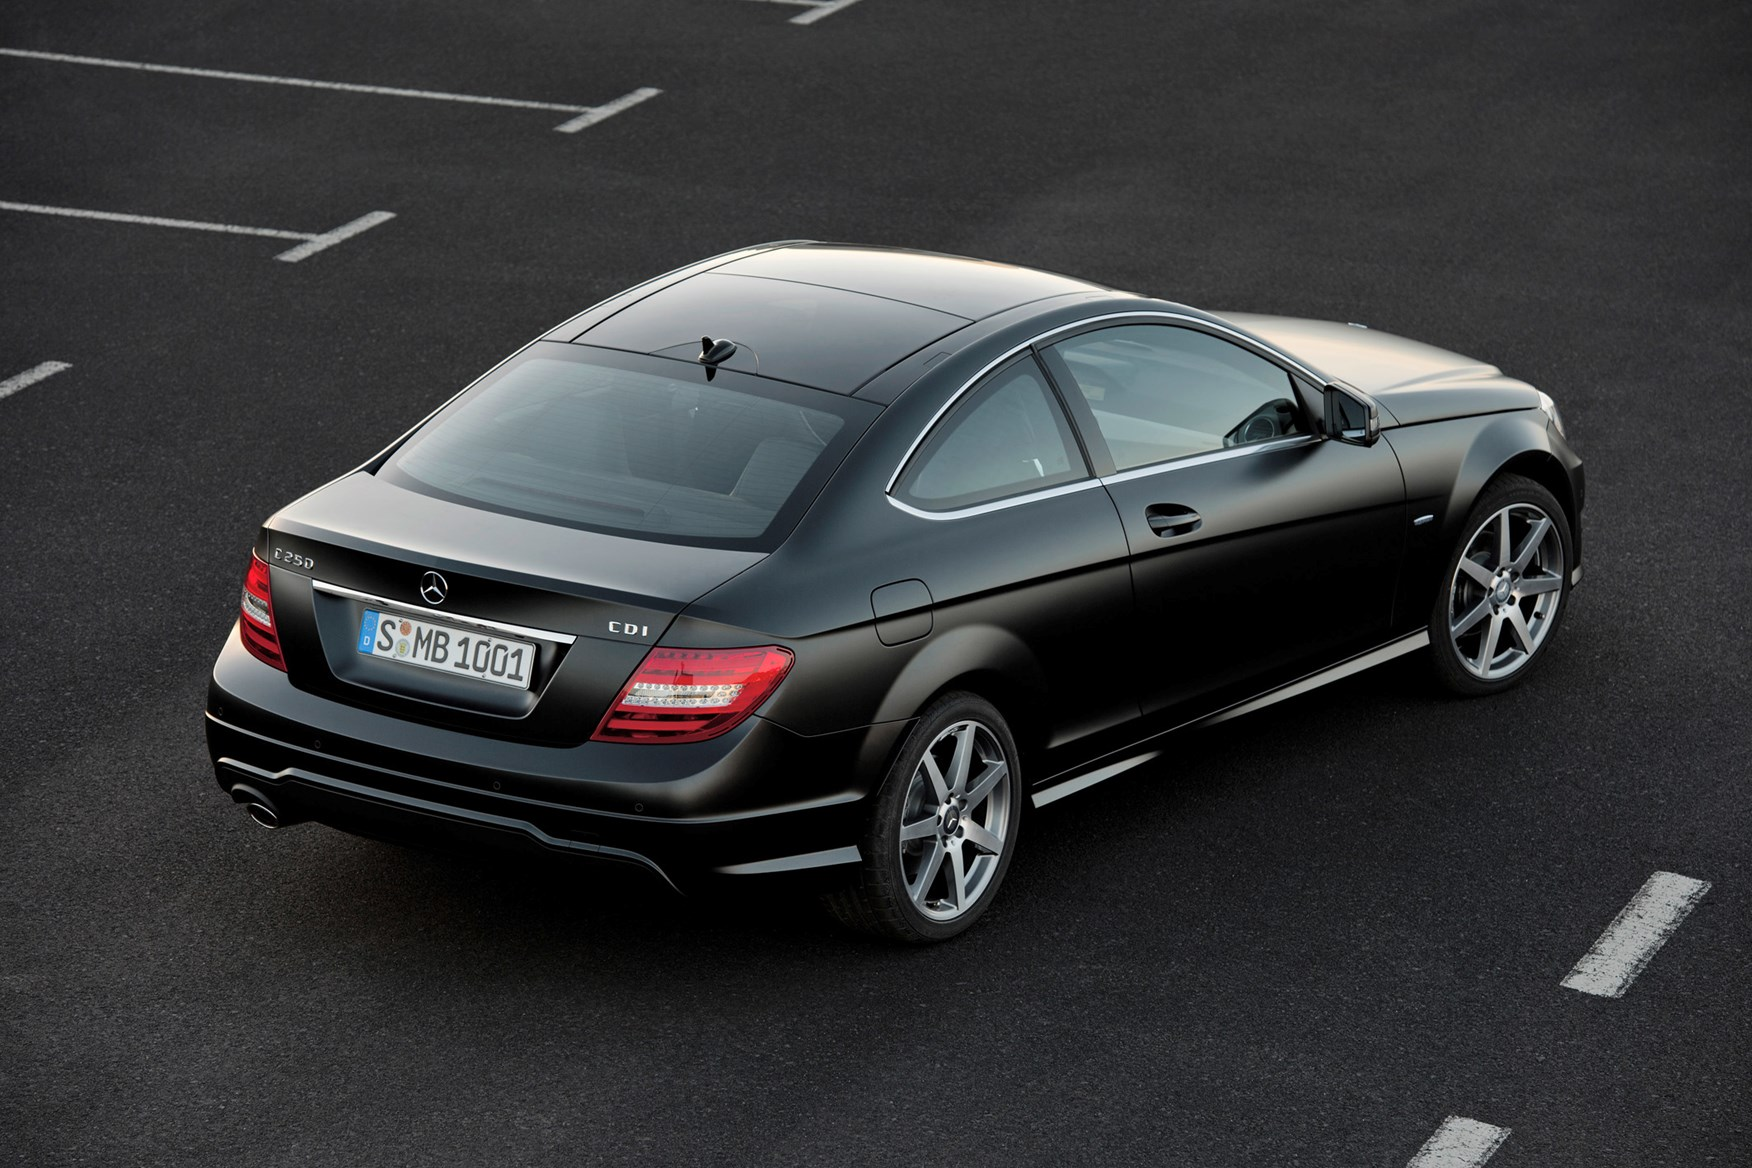 Mercedes benz c class coup review 2011 2015 parkers for How much is a mercedes benz c class